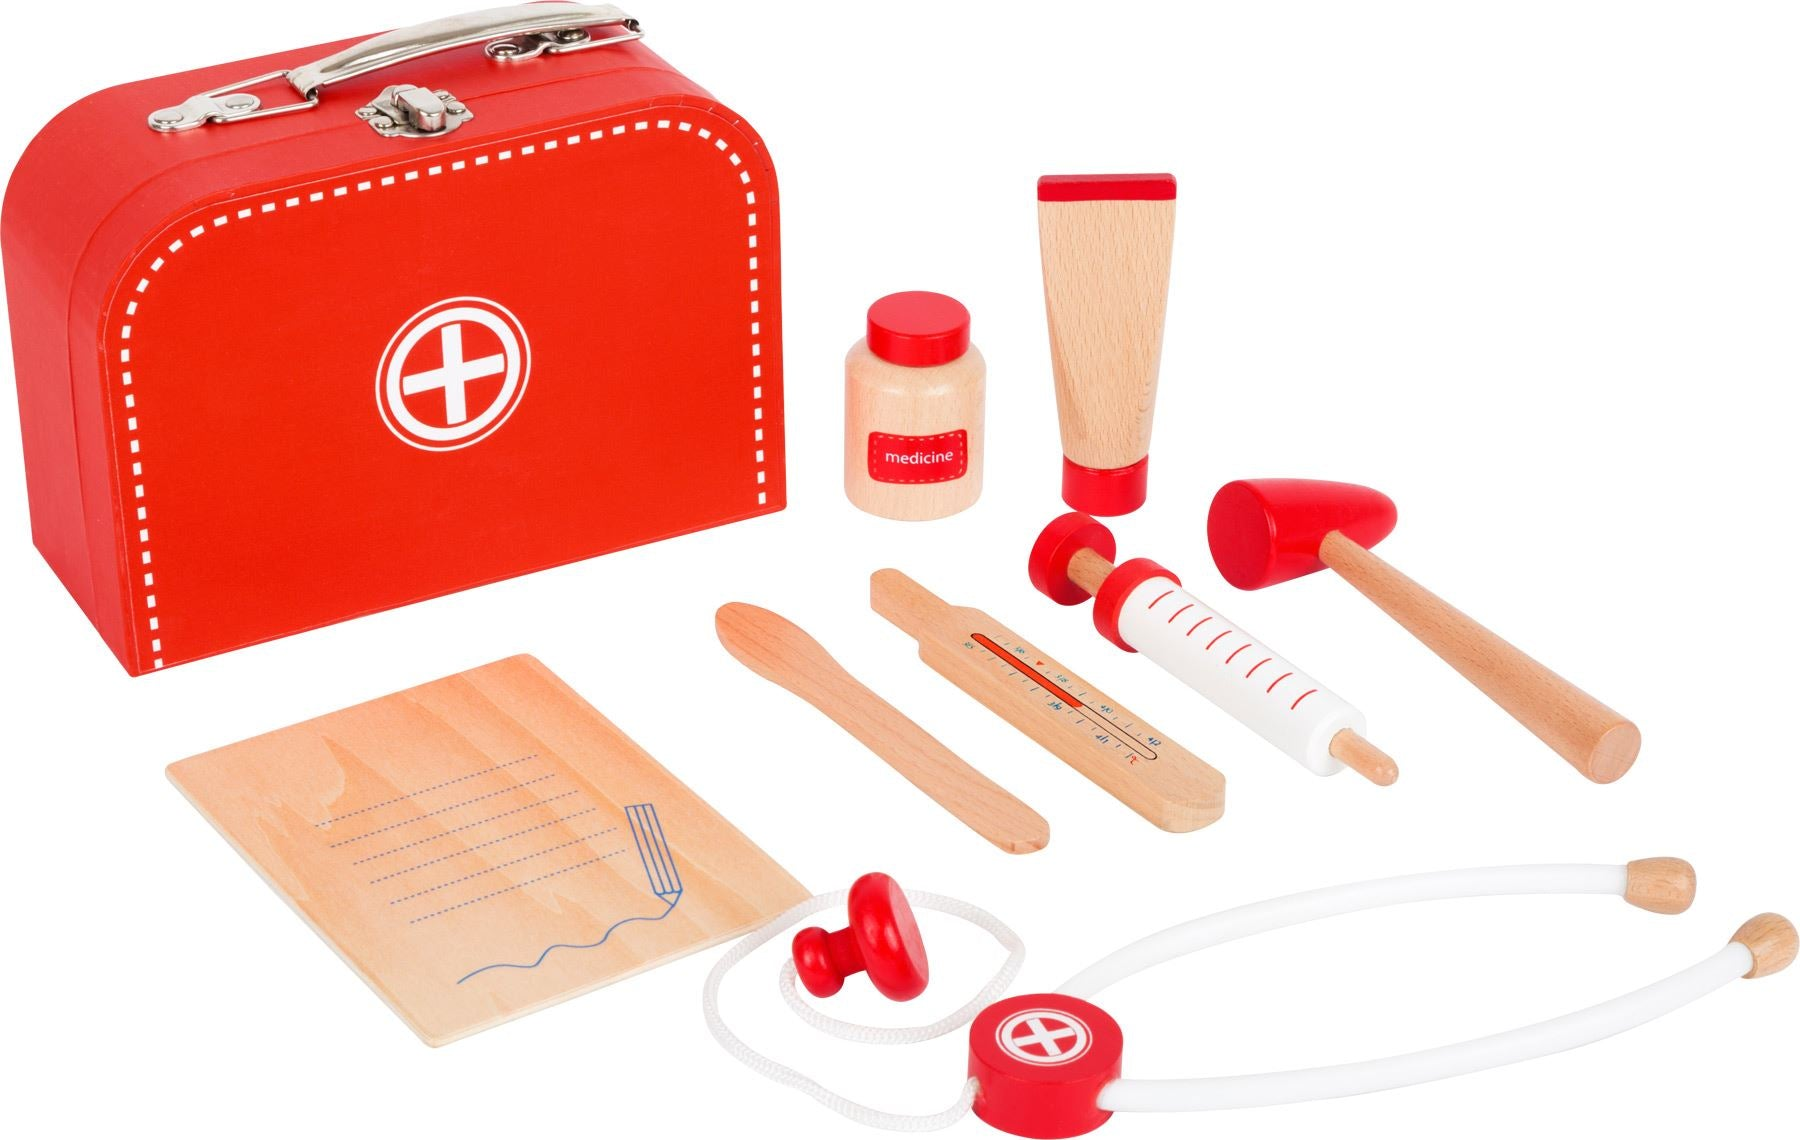 Doctor's Kit Play Set by Small Foot